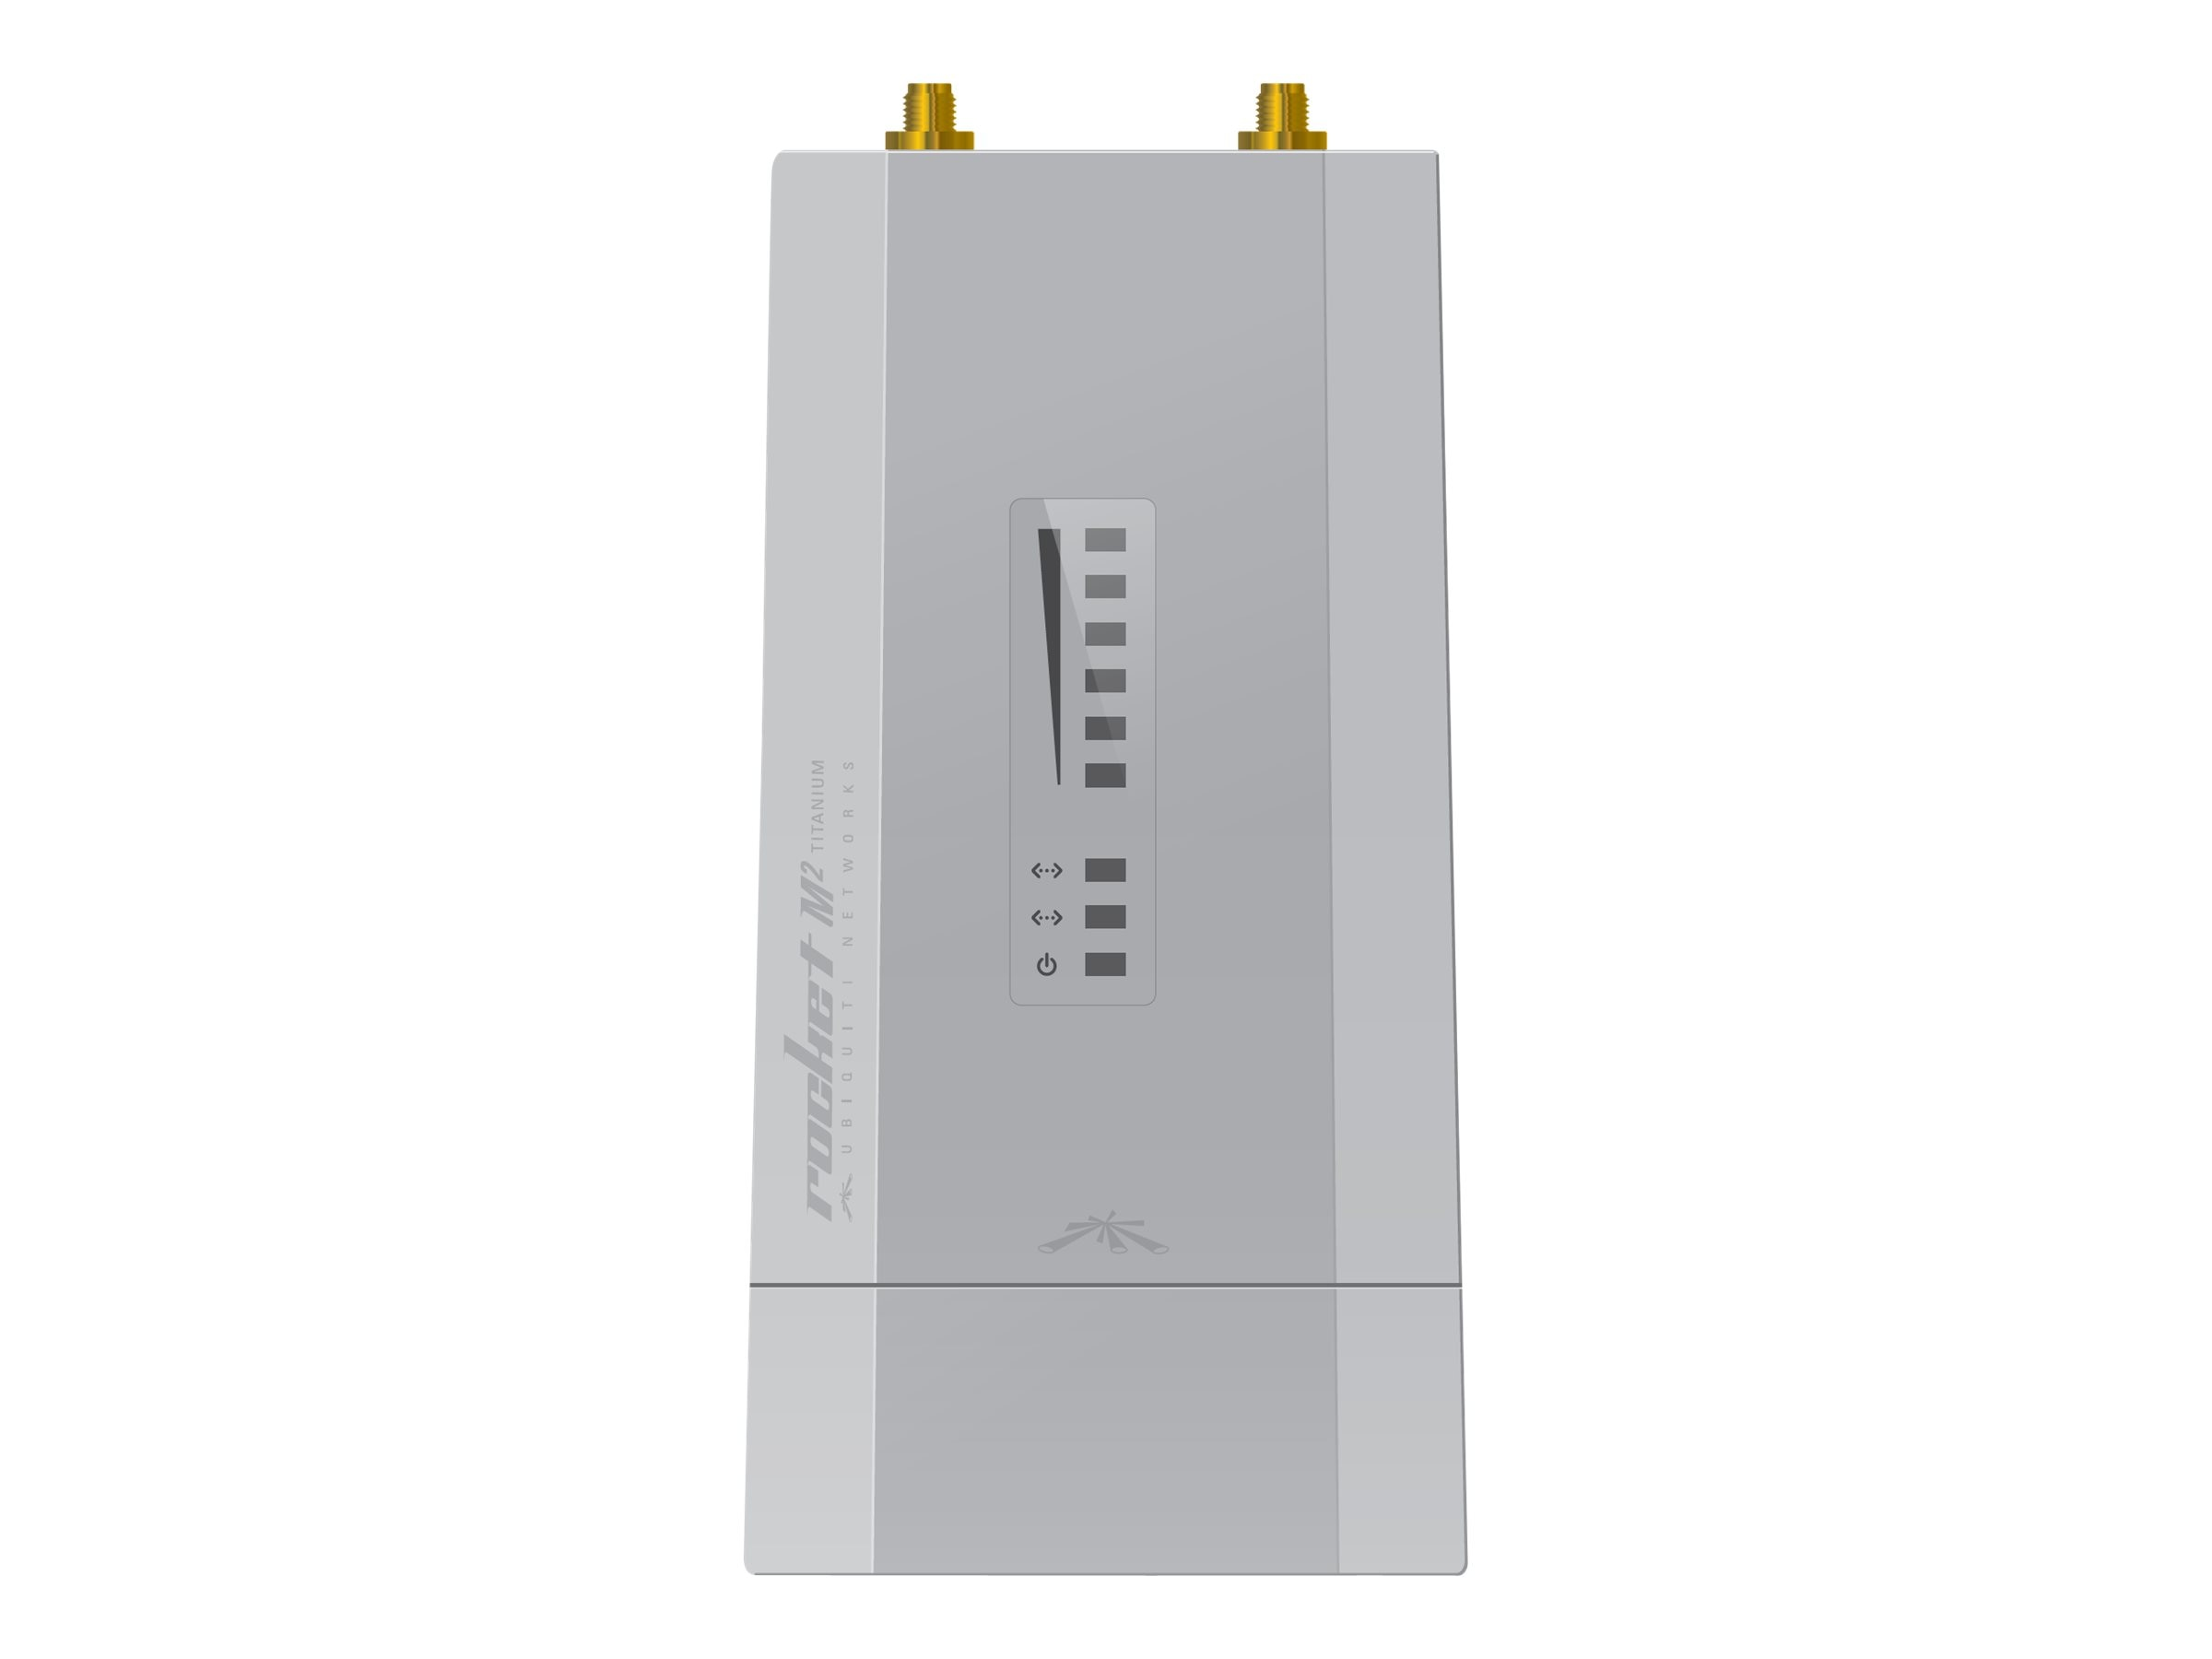 Ubiquiti RocketM2 Titanium Wireless, RM2-TI